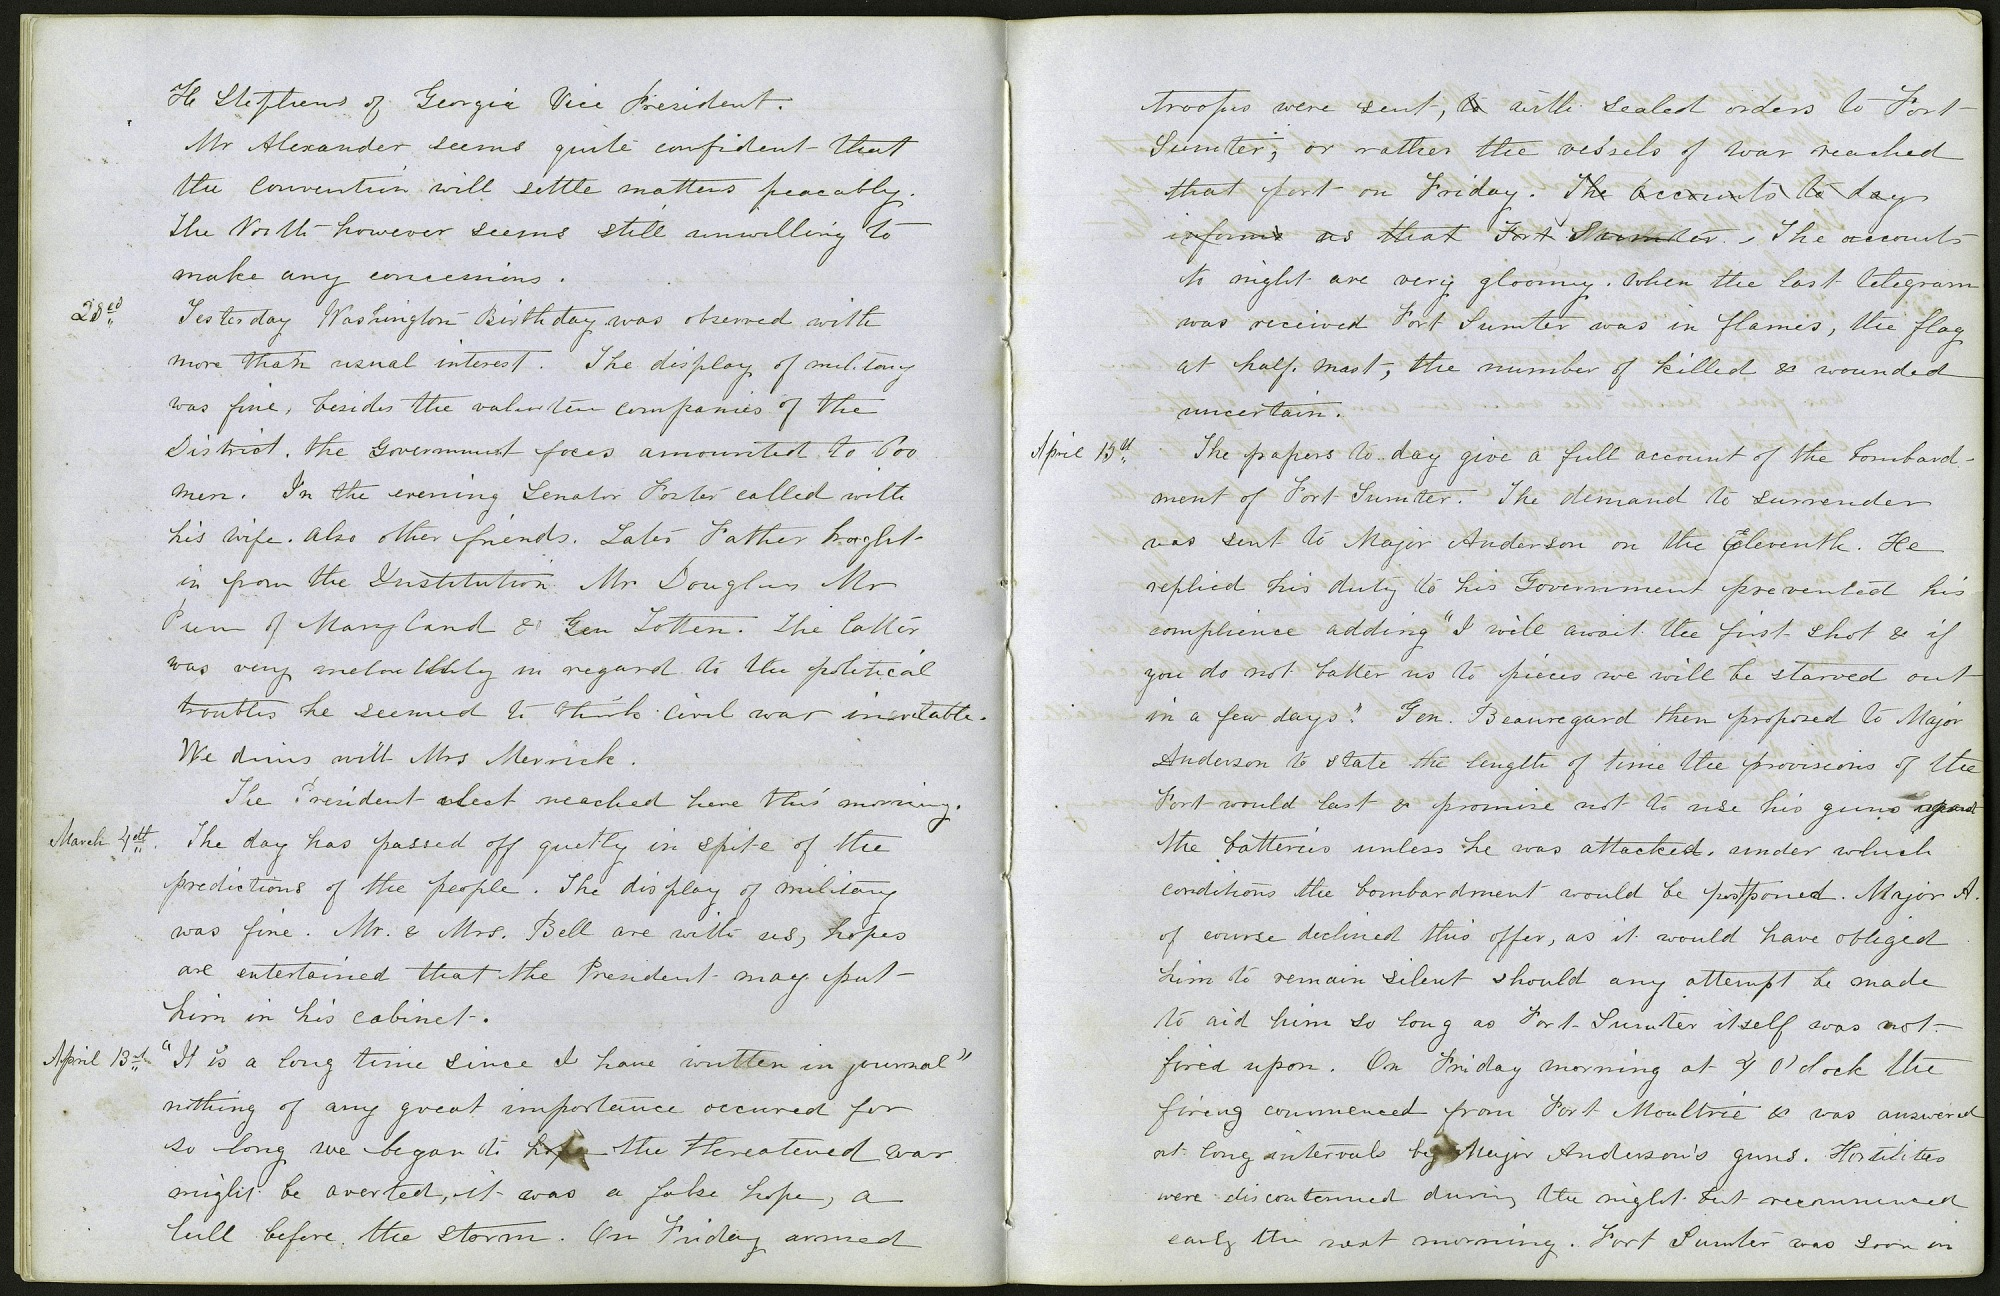 Mary Henry Diary Entries on Dorothea Dix and Fort Sumter Attack